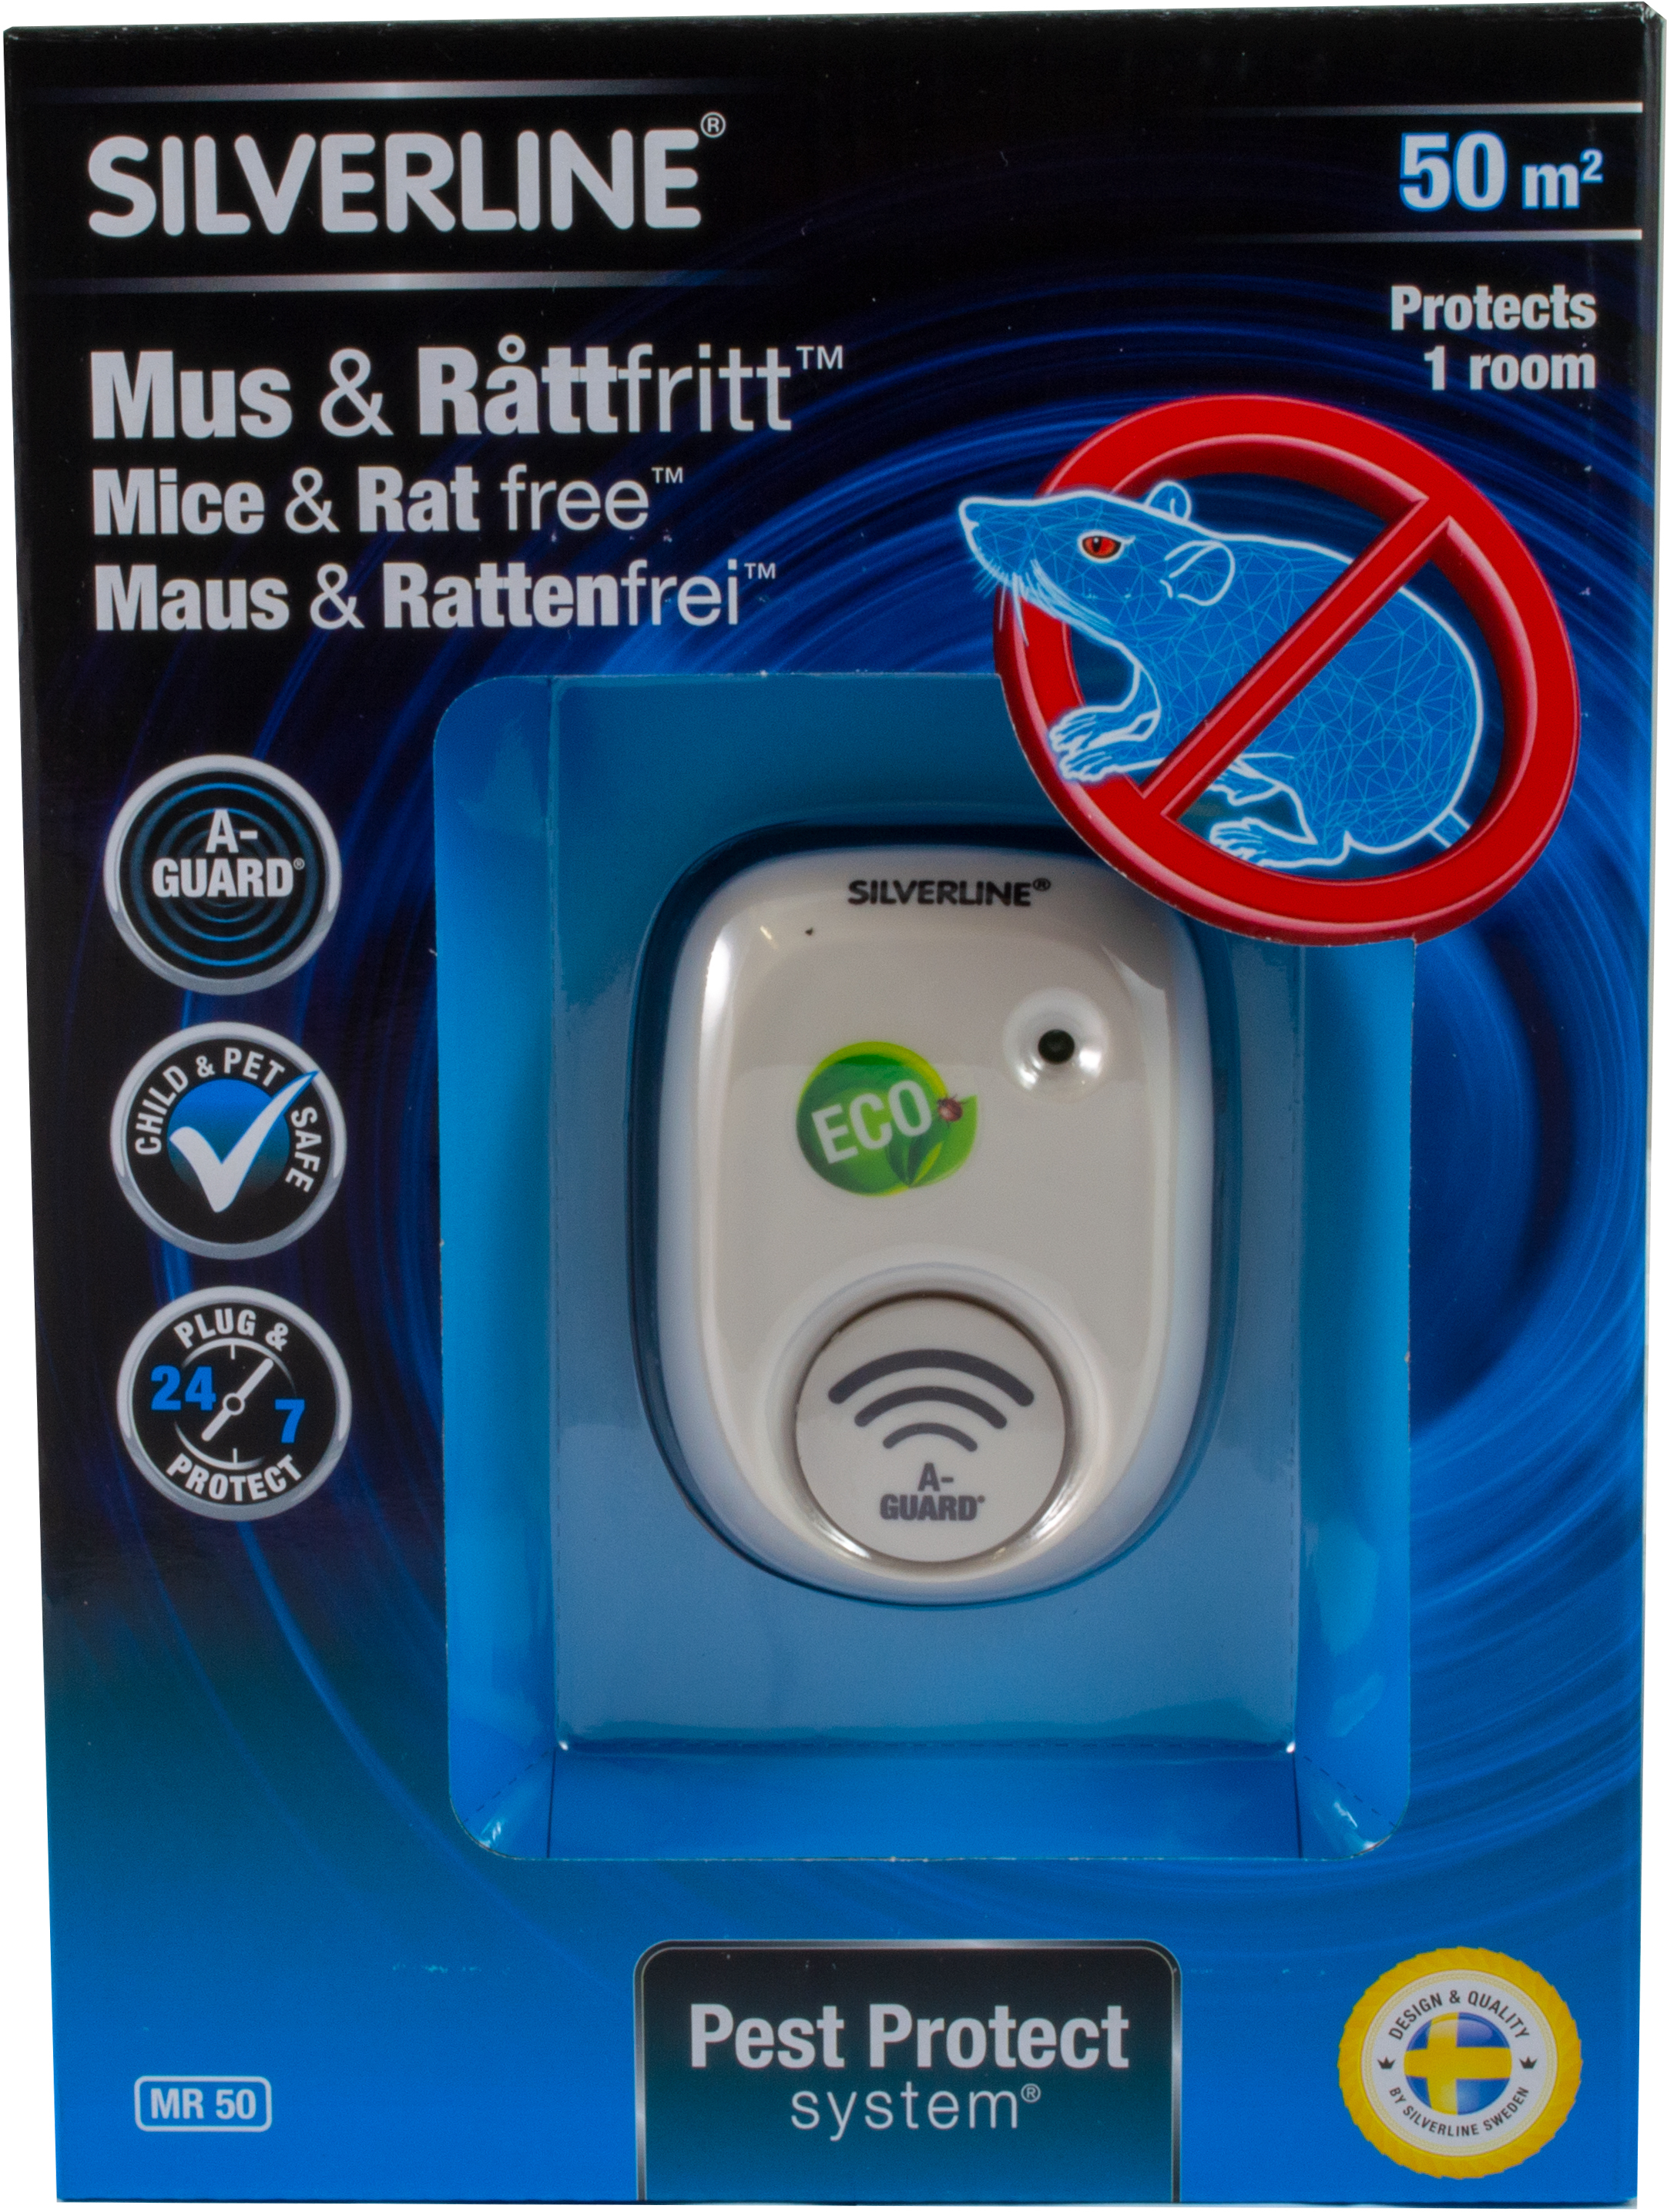 Silverline® Pest Protection system Mausfrei /& Rattenfrei 130 m²